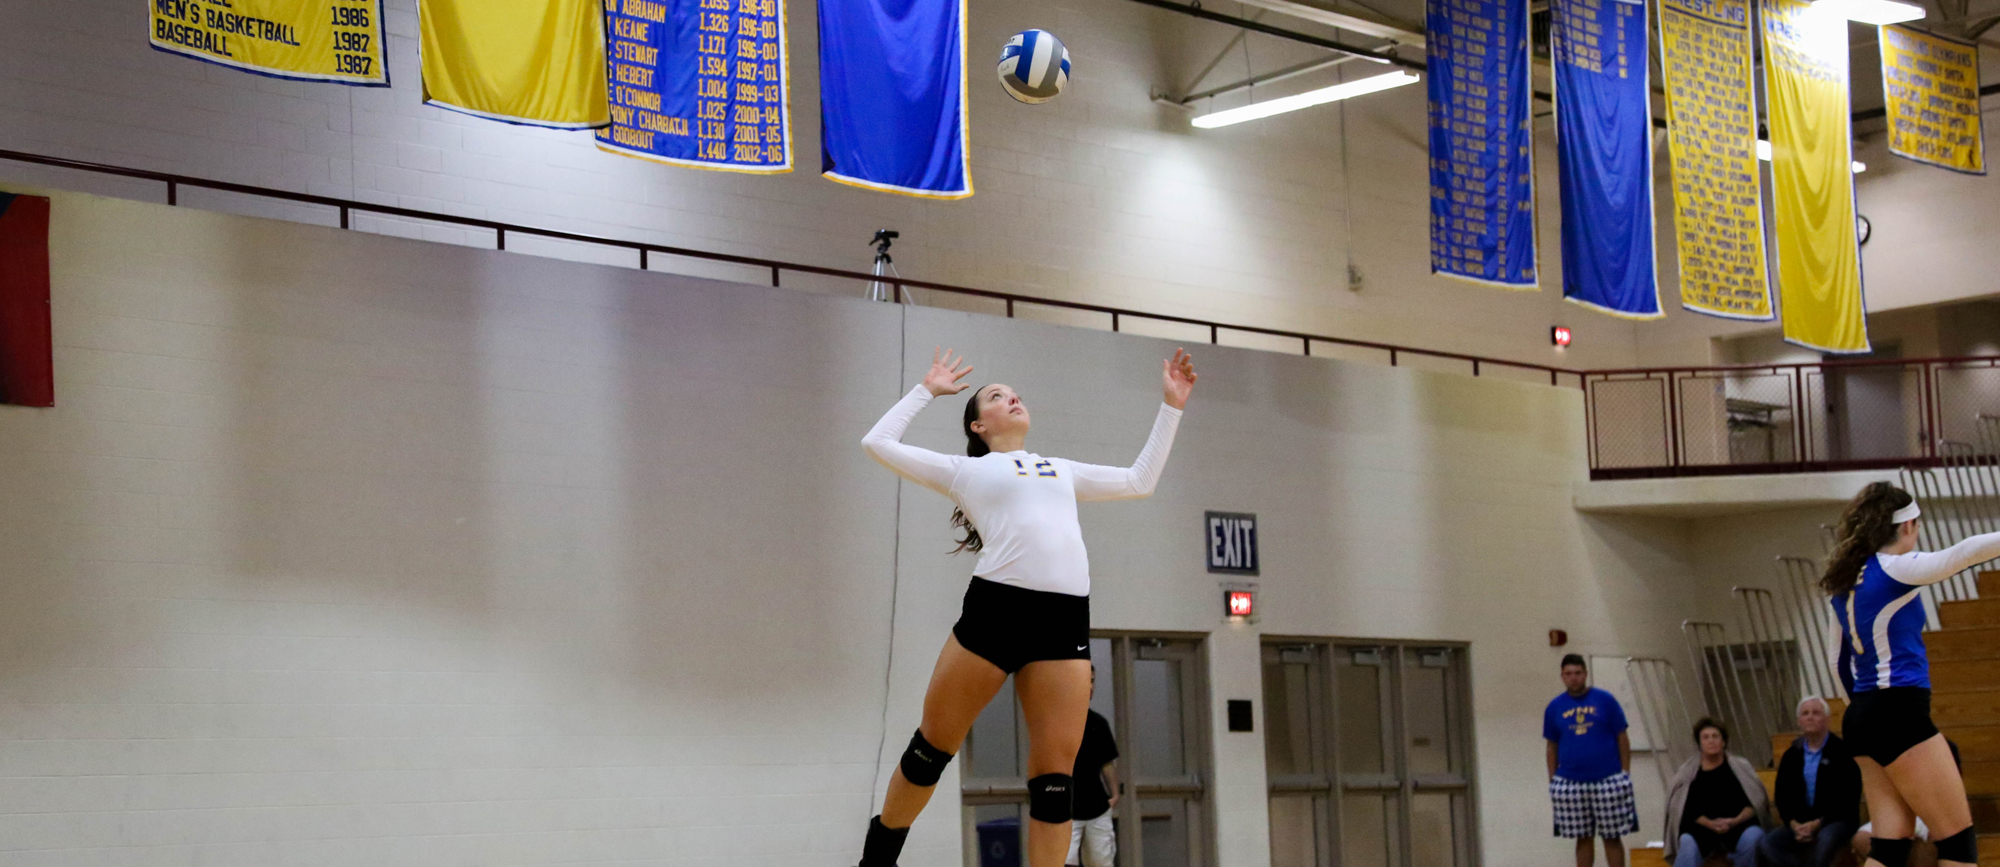 Golden Bears Fall in Home Opener to Connecticut College, 3-0